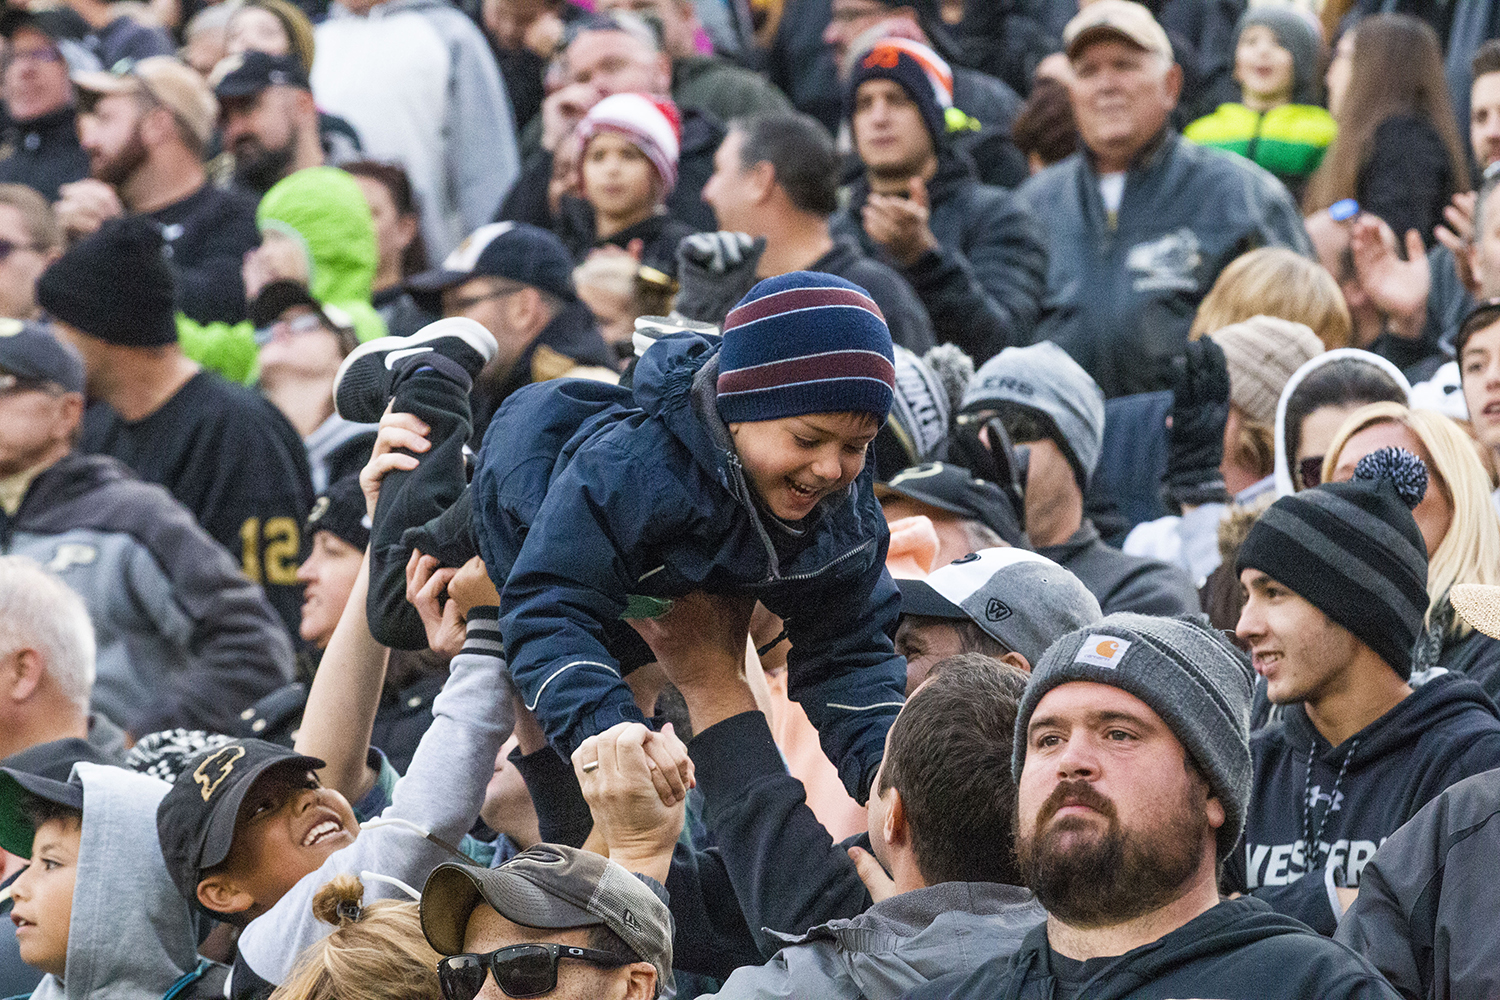 A+young+fan+cheers+during+the+Iowa%2FPurdue+game+at+Ross-Ade+Stadium+in+West+Lafayette%2C+Ind.+on+Saturday%2C+November+3%2C+2018.+The+Boilermakers+defeated+the+Hawkeyes+38-36.+